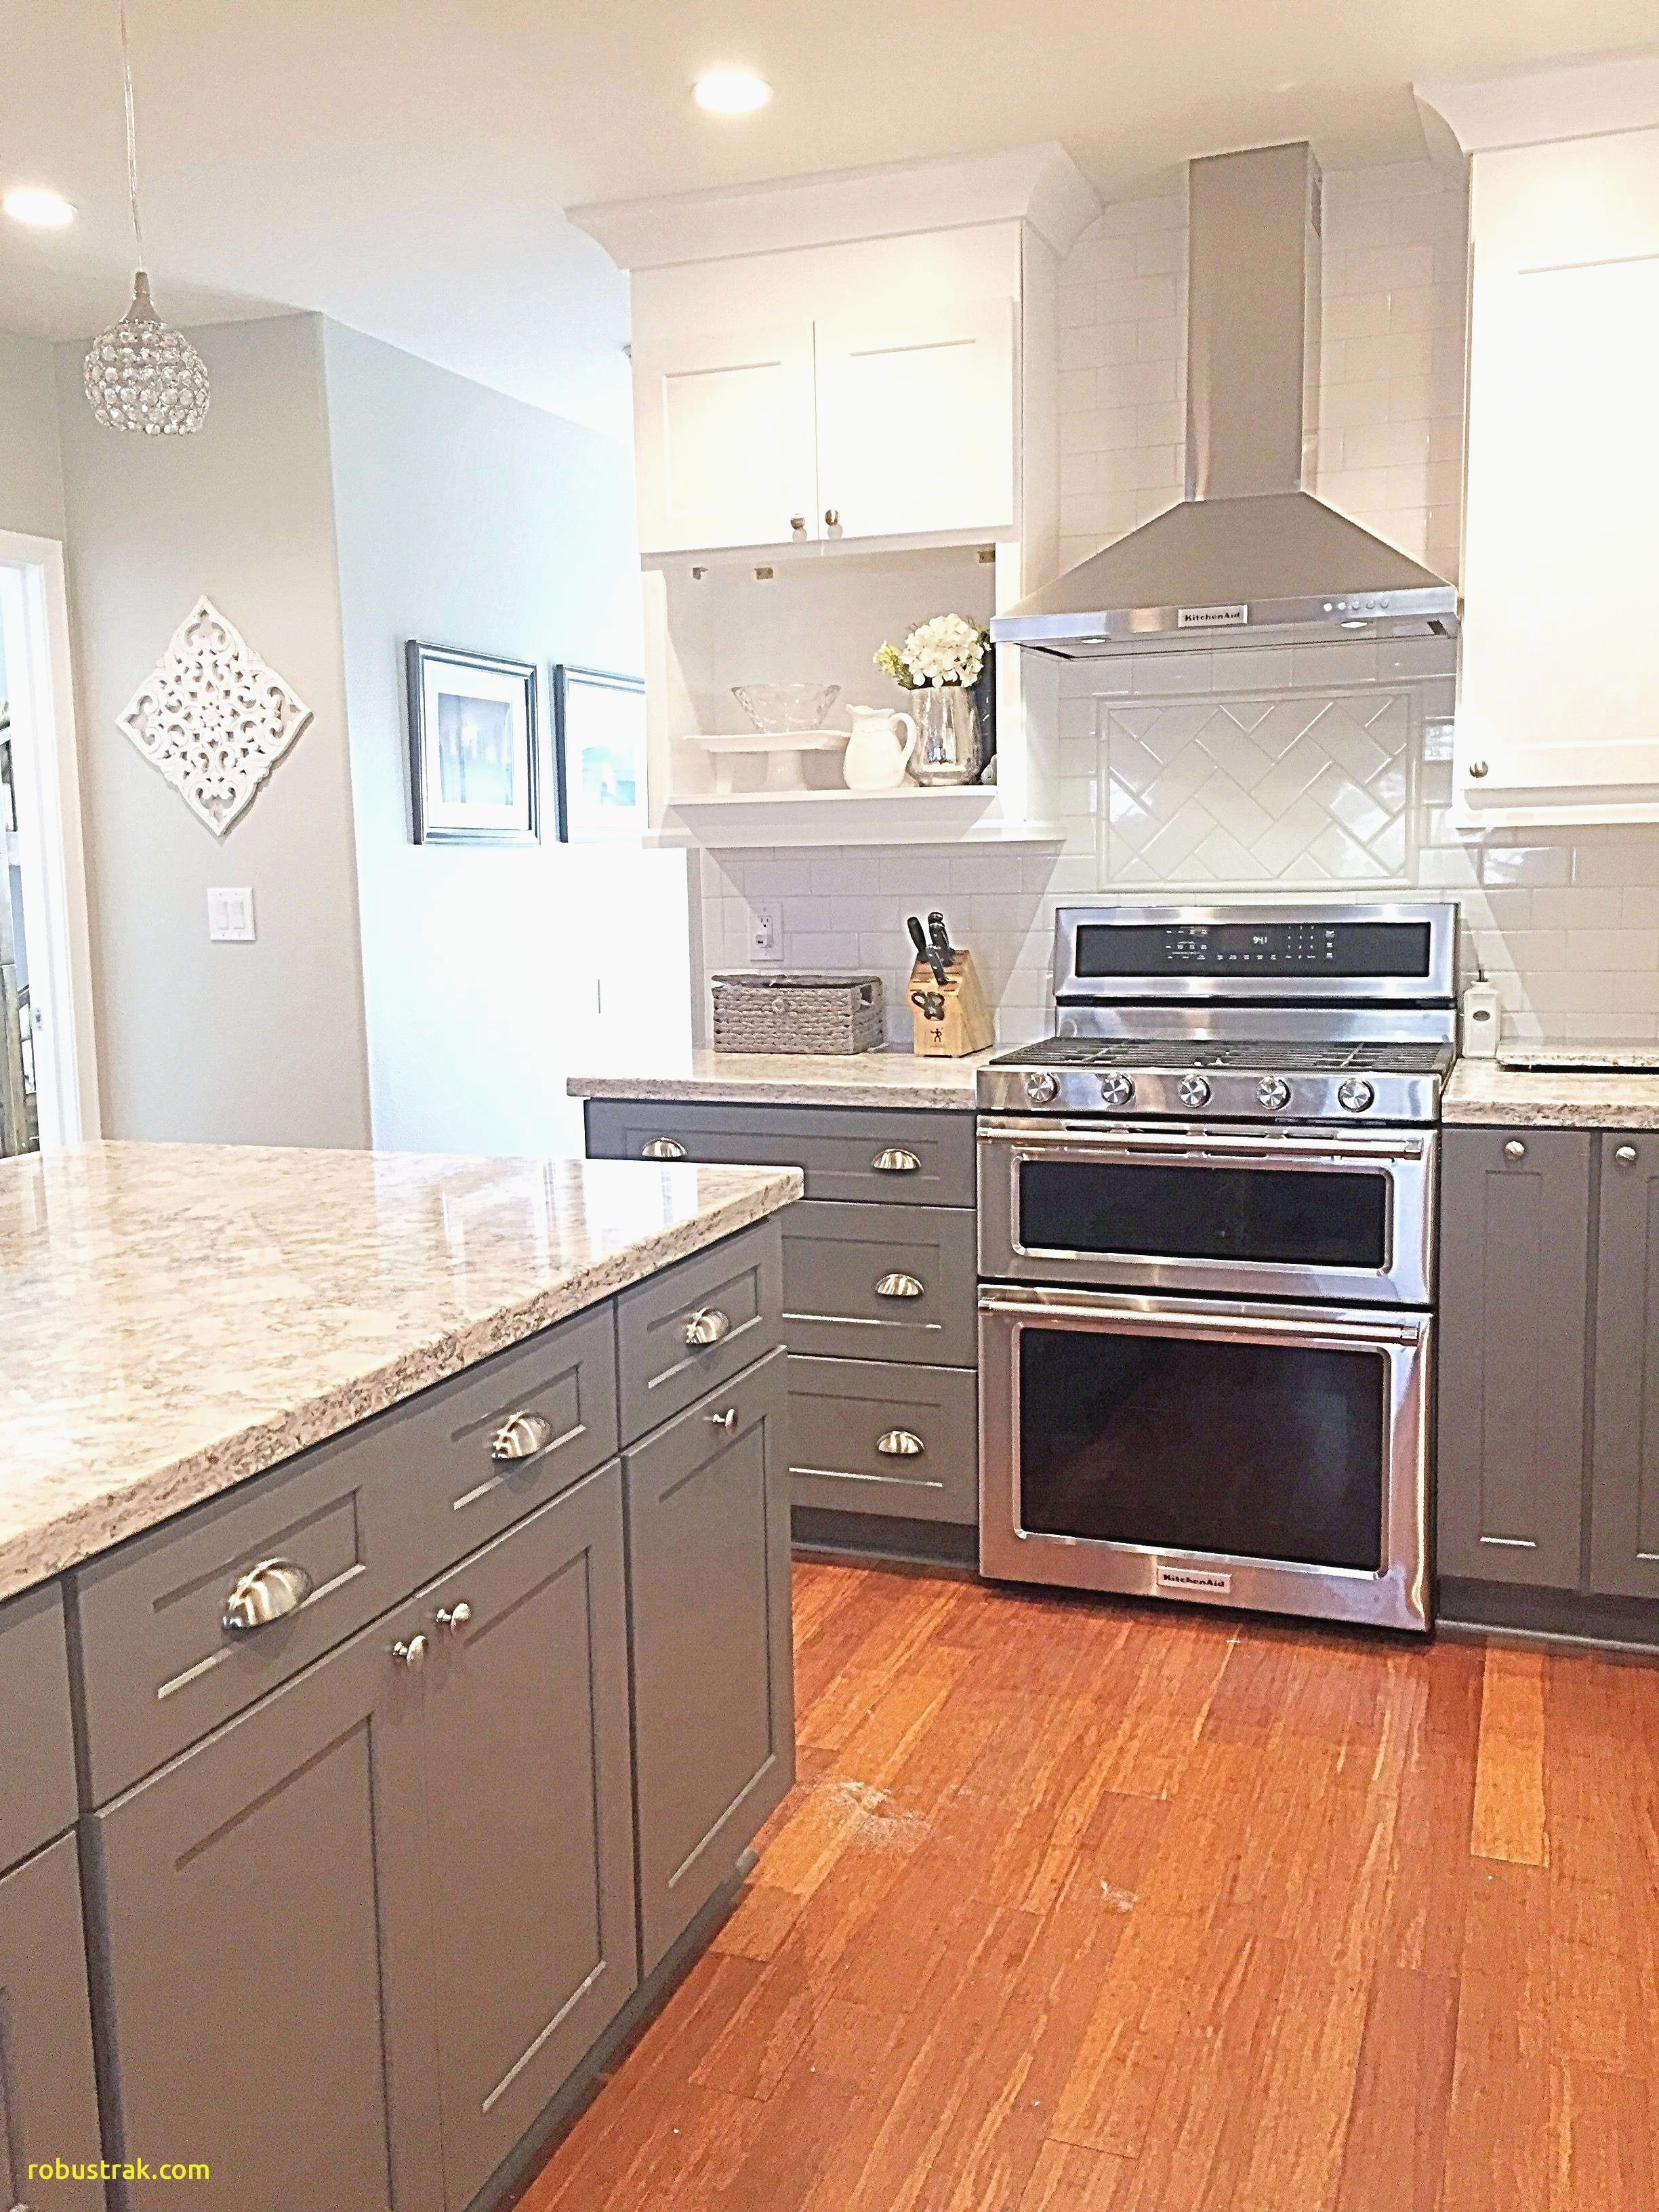 refinished grey hardwood floors of 18 inspirational hardwood flooring stock dizpos com intended for hardwood flooring awesome the most kitchen cabinet wood colors stock home ideas pictures